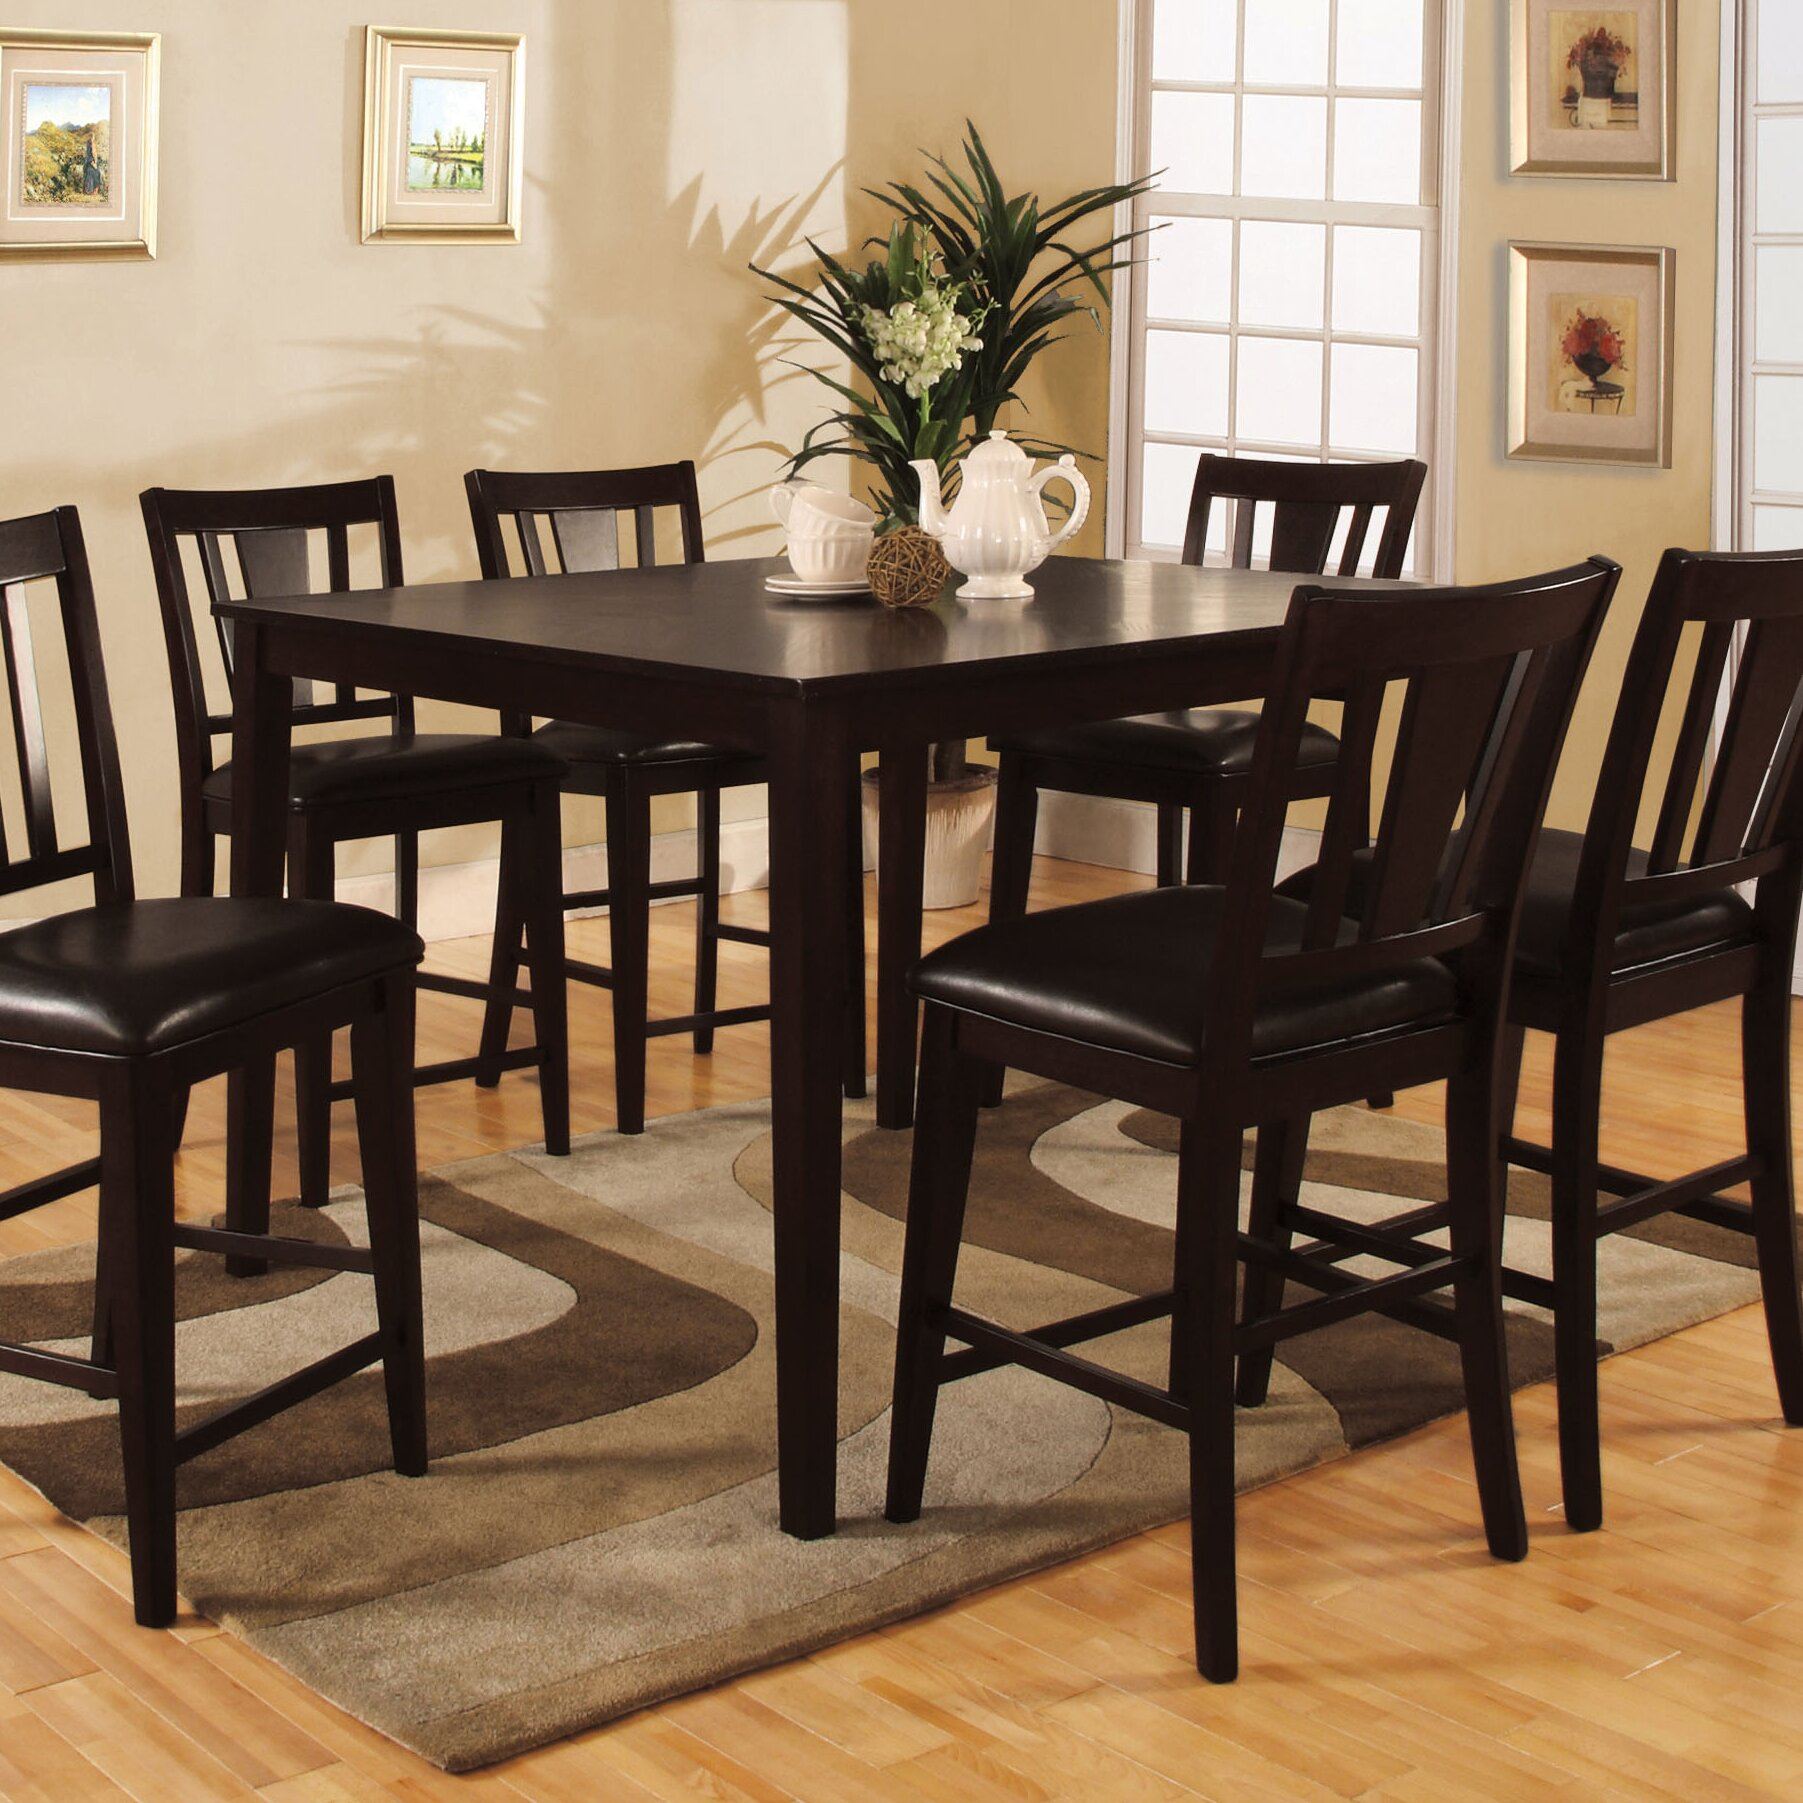 7 Piece Dinette Sets: Darby Home Co Rushford Leal 7 Piece Counter Height Dining